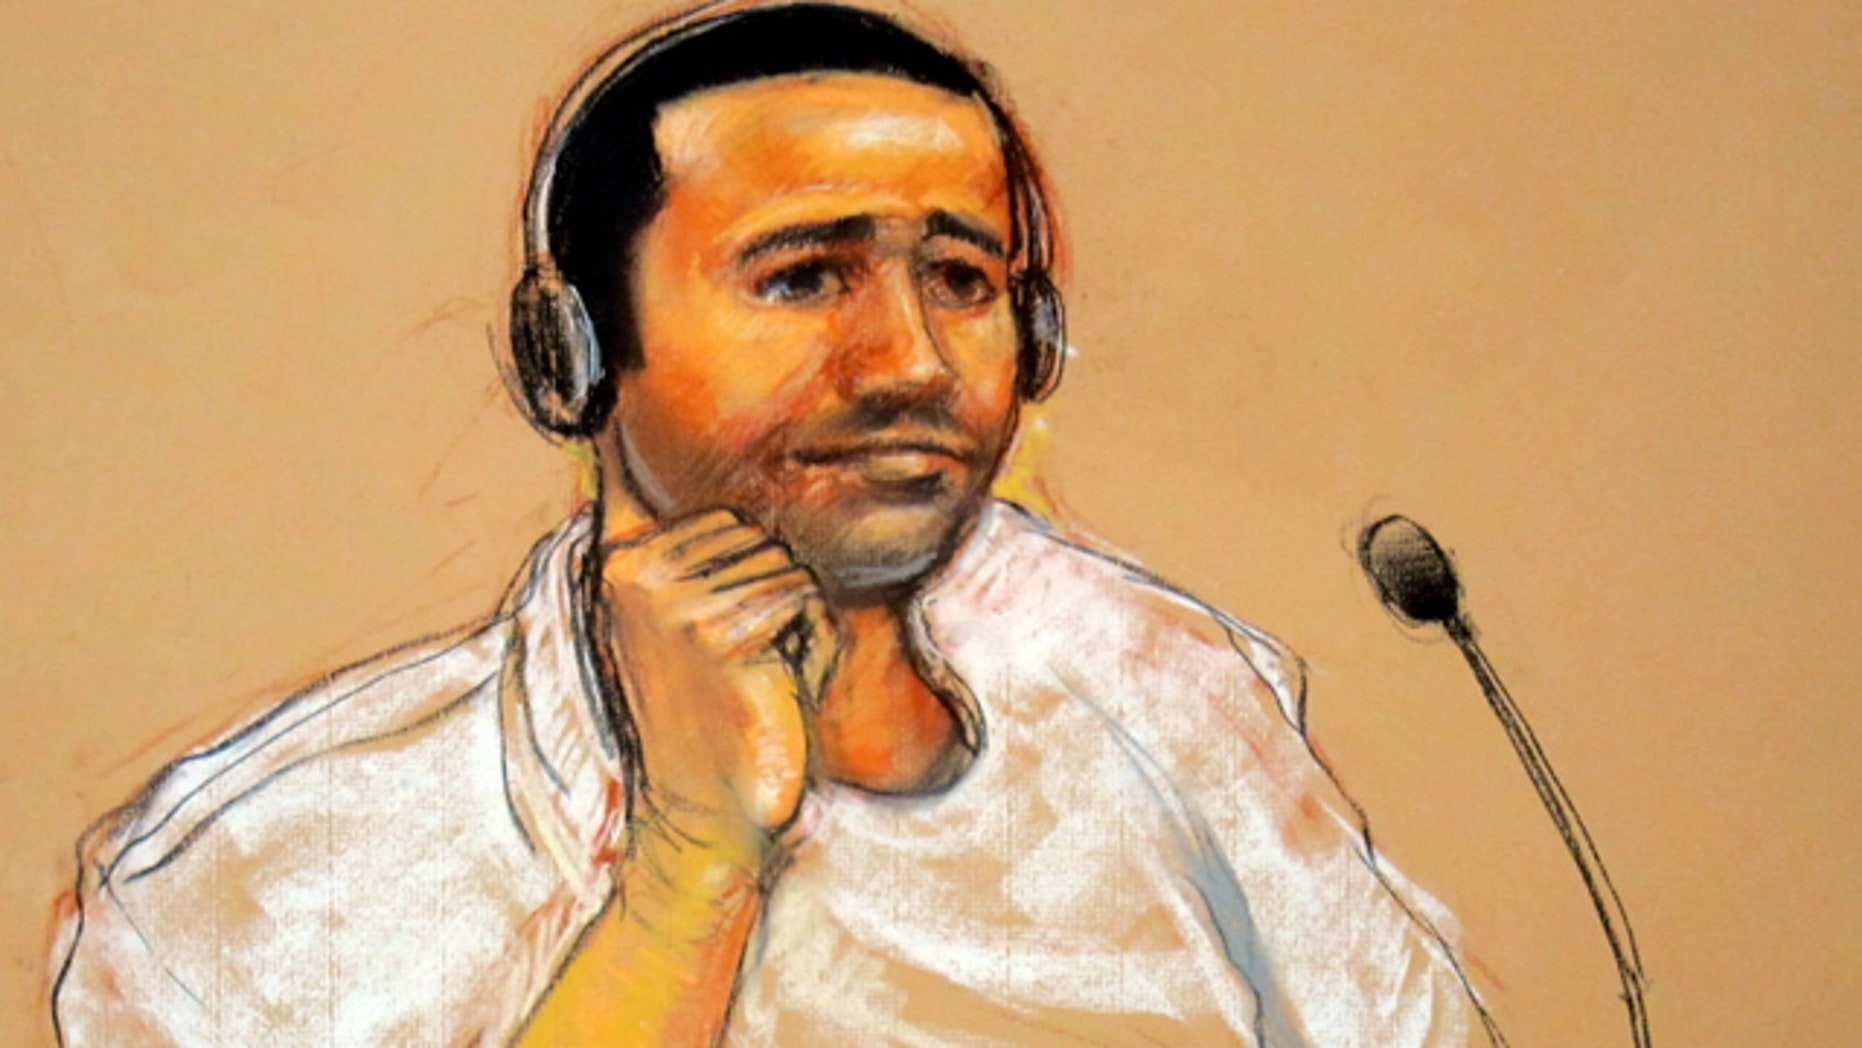 Nov. 9: In this sketch by courtroom artist Janet Hamlin, reviewed by the U.S. military, Abd al-Rahim al-Nashiri is seen during his military commissions arraignment at the Guantanamo Bay.